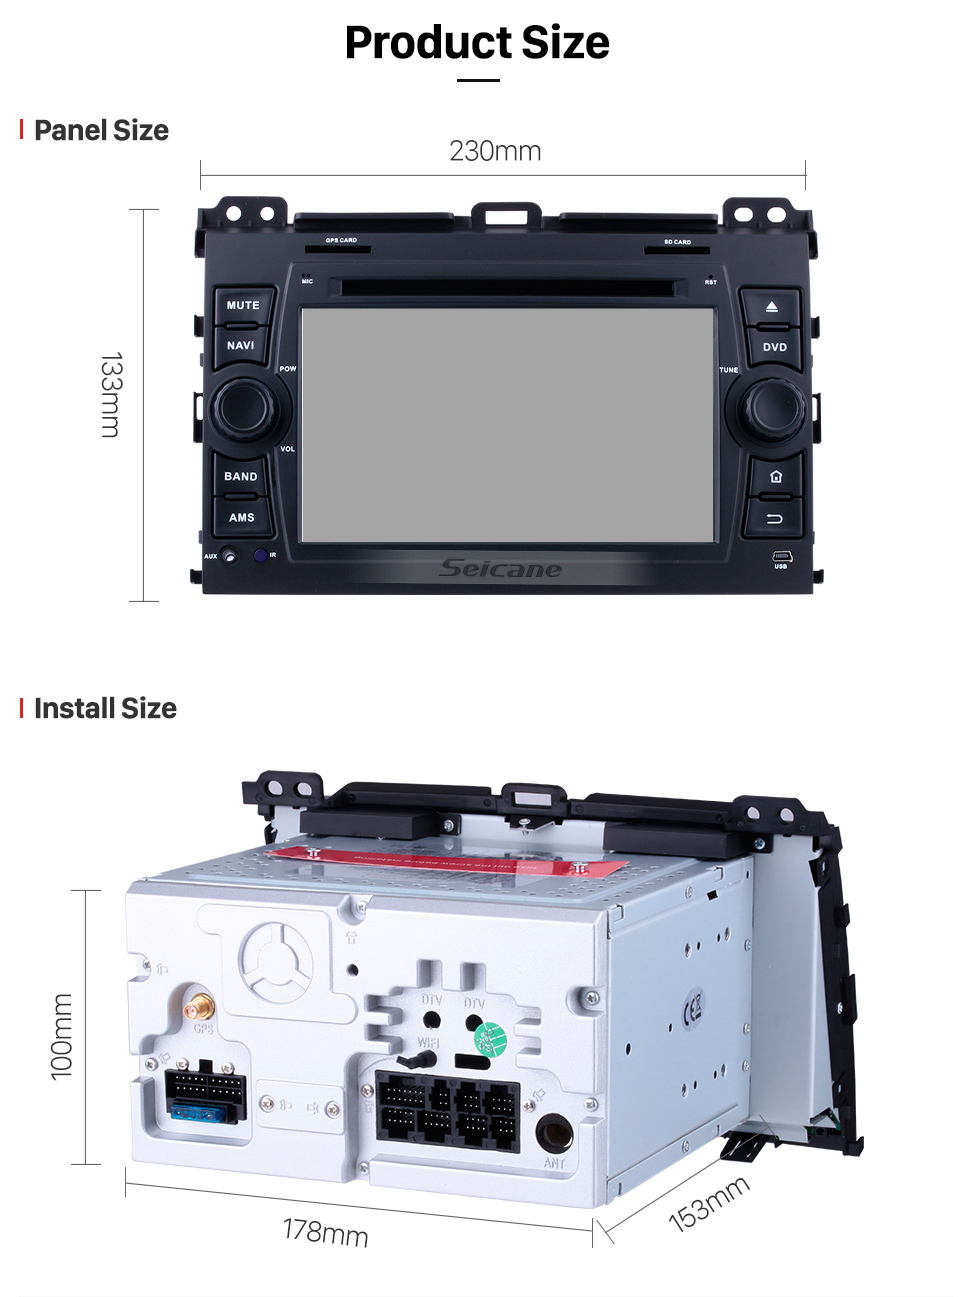 Seicane OEM Android 8.0 Sat Nav System for 2002-2009 Toyota Prado Cruiser with 1024*600 Multi-touch Capacitive Screen DVD Player AM FM Radio 3G WiFi Bluetooth Music Mirror Link OBD2 AUX Steering Wheel Control